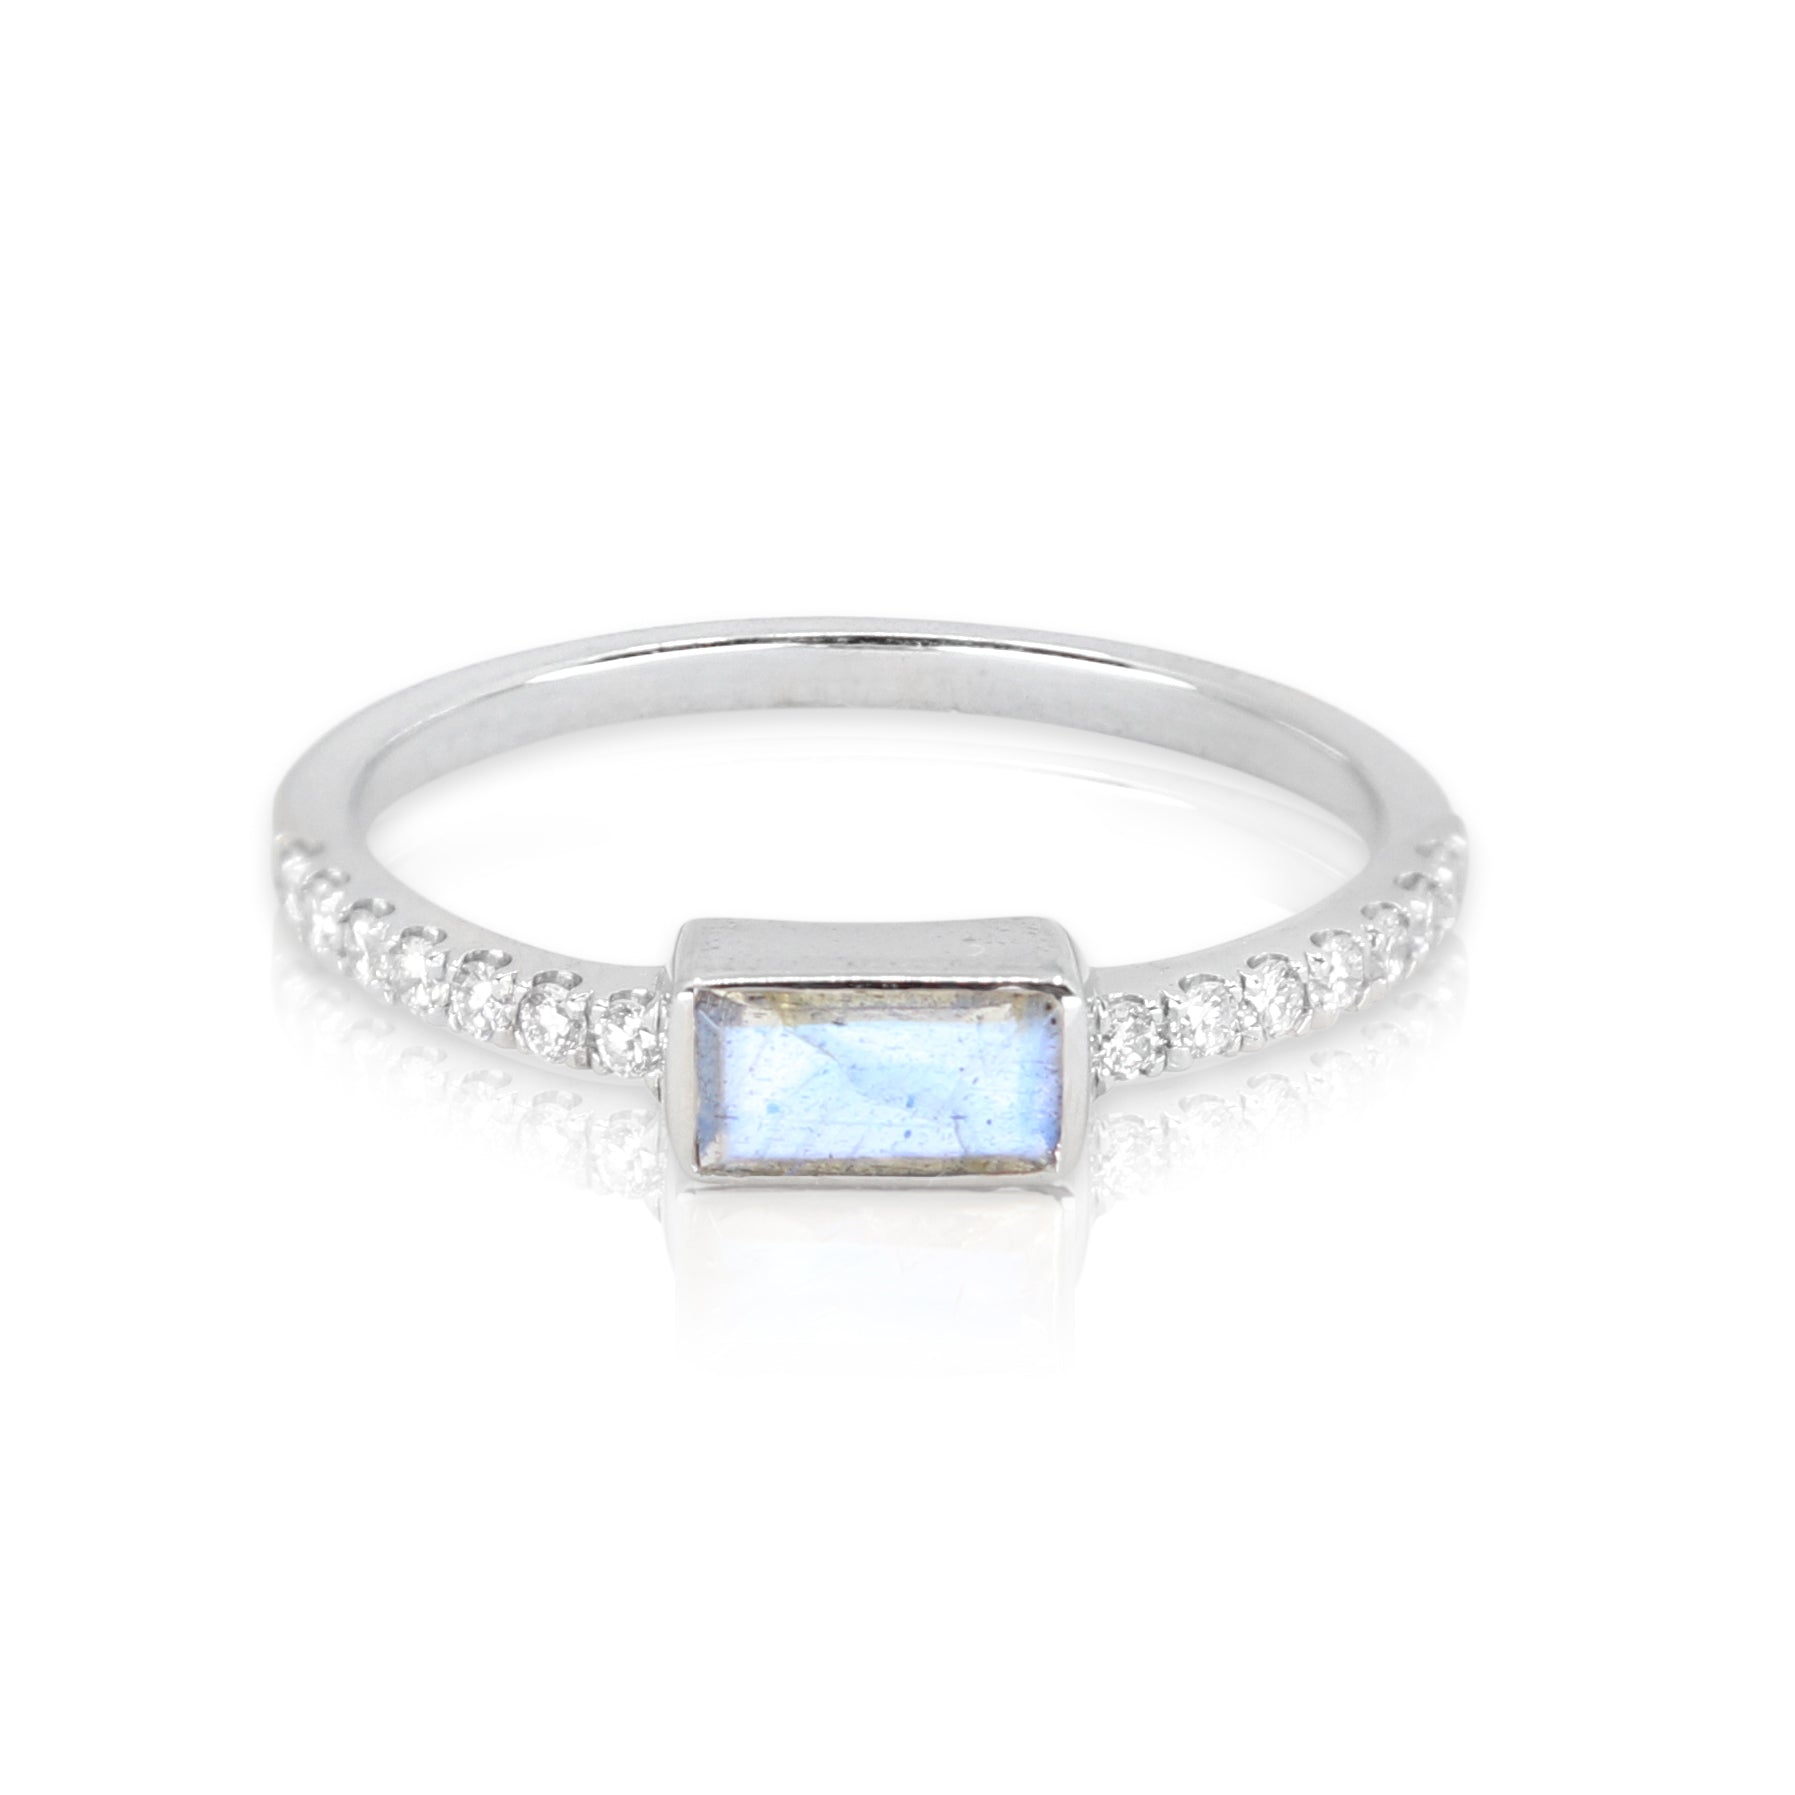 White Gold Labradorite Baguette and Diamond Band